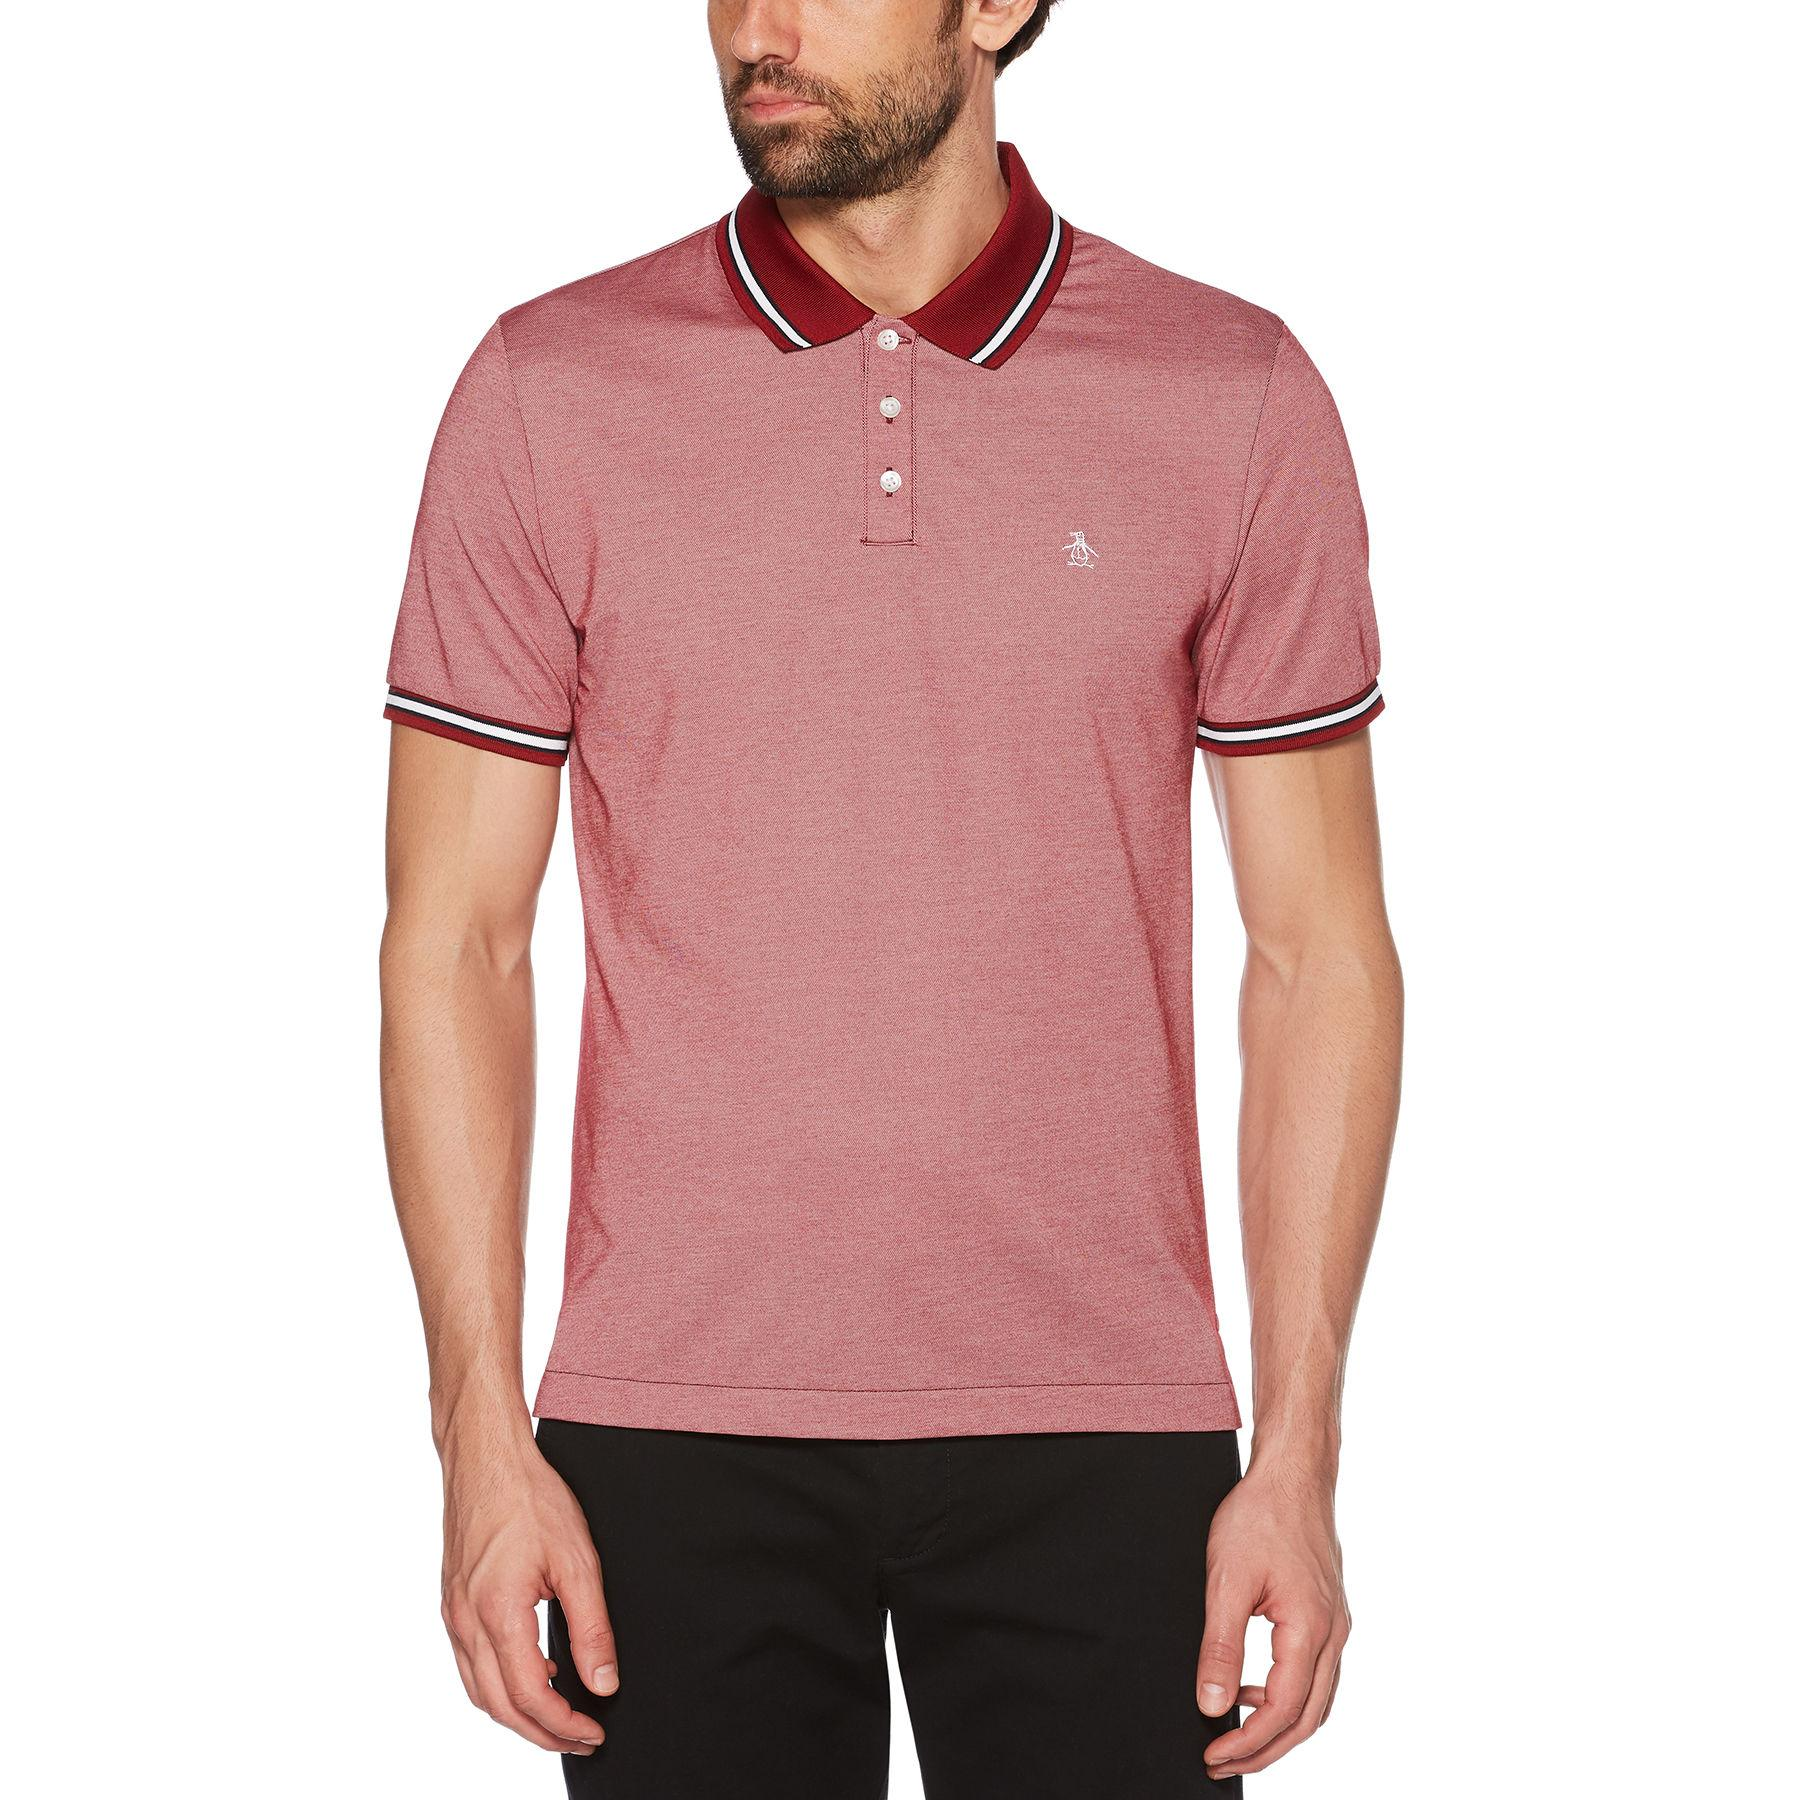 8f3a0691 Lyst - Original Penguin Tipped Pique Polo in Red for Men - Save 6%